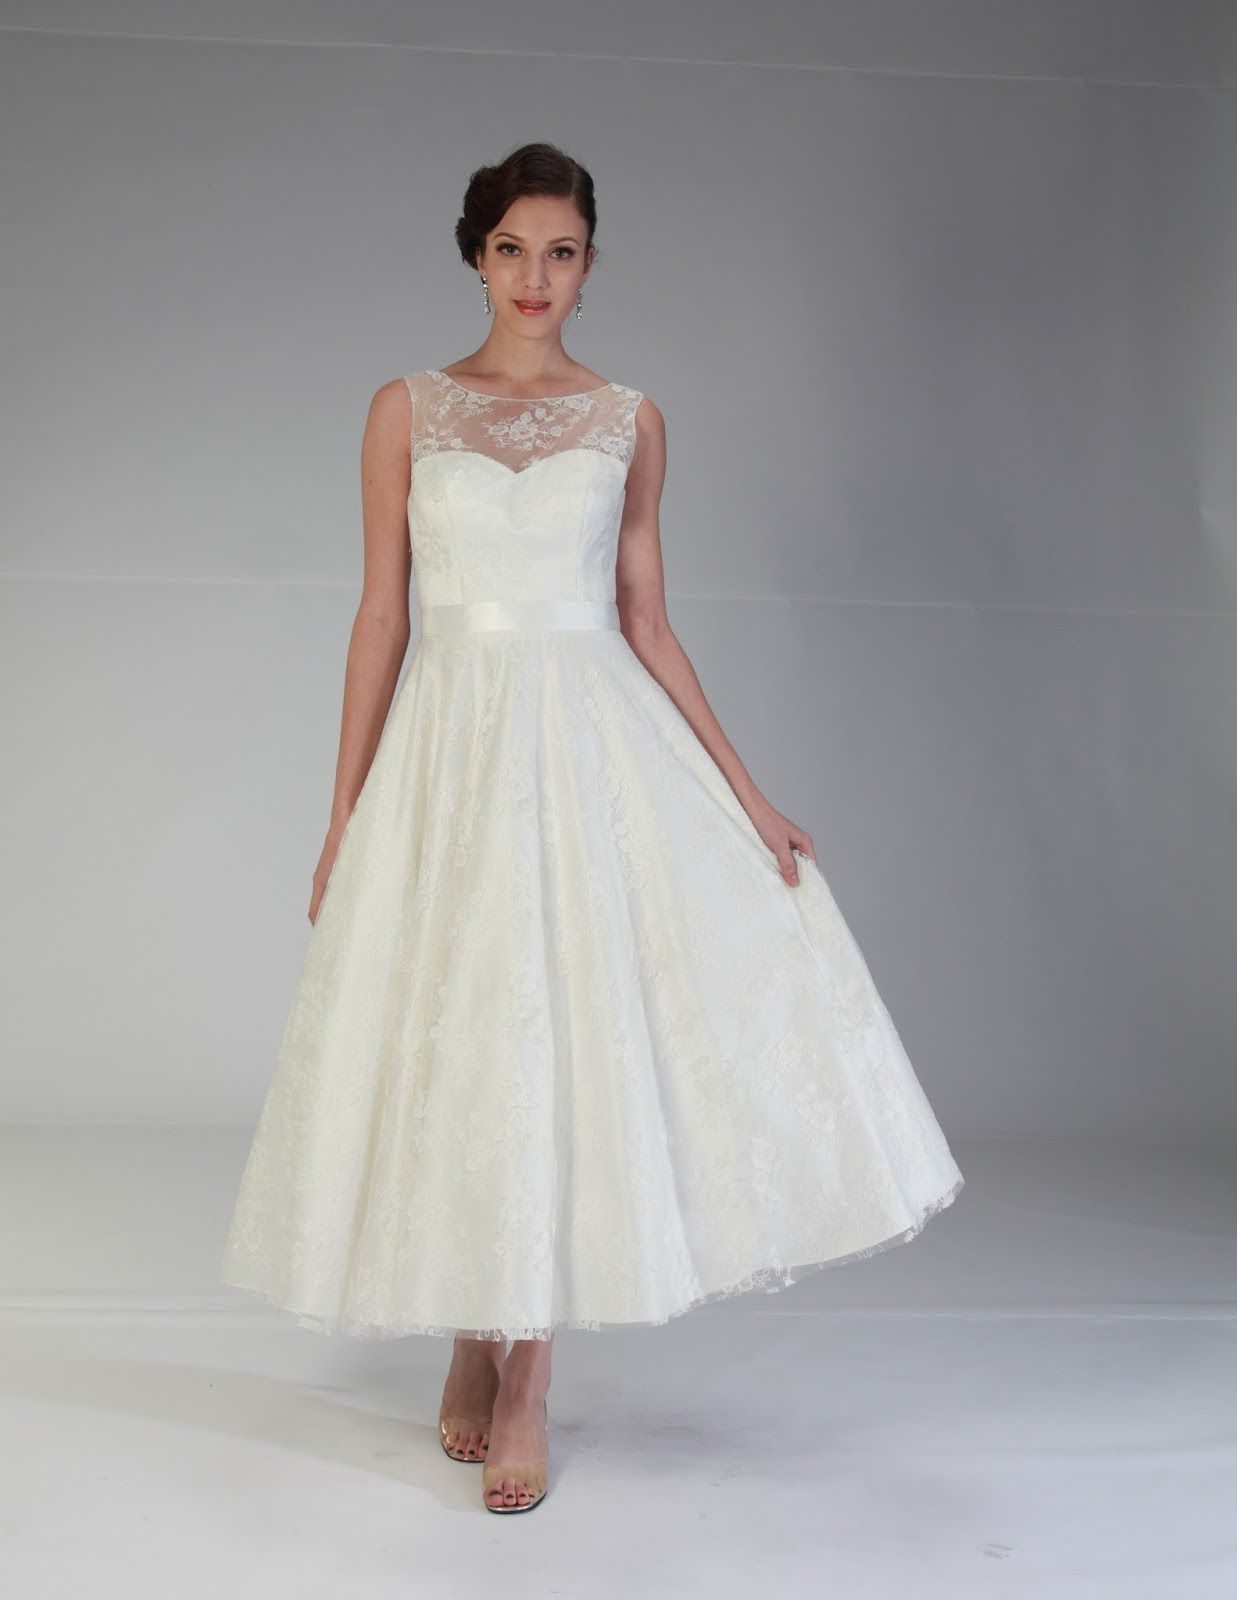 Choosing The Best Wedding Dress For A Civil Ceremony